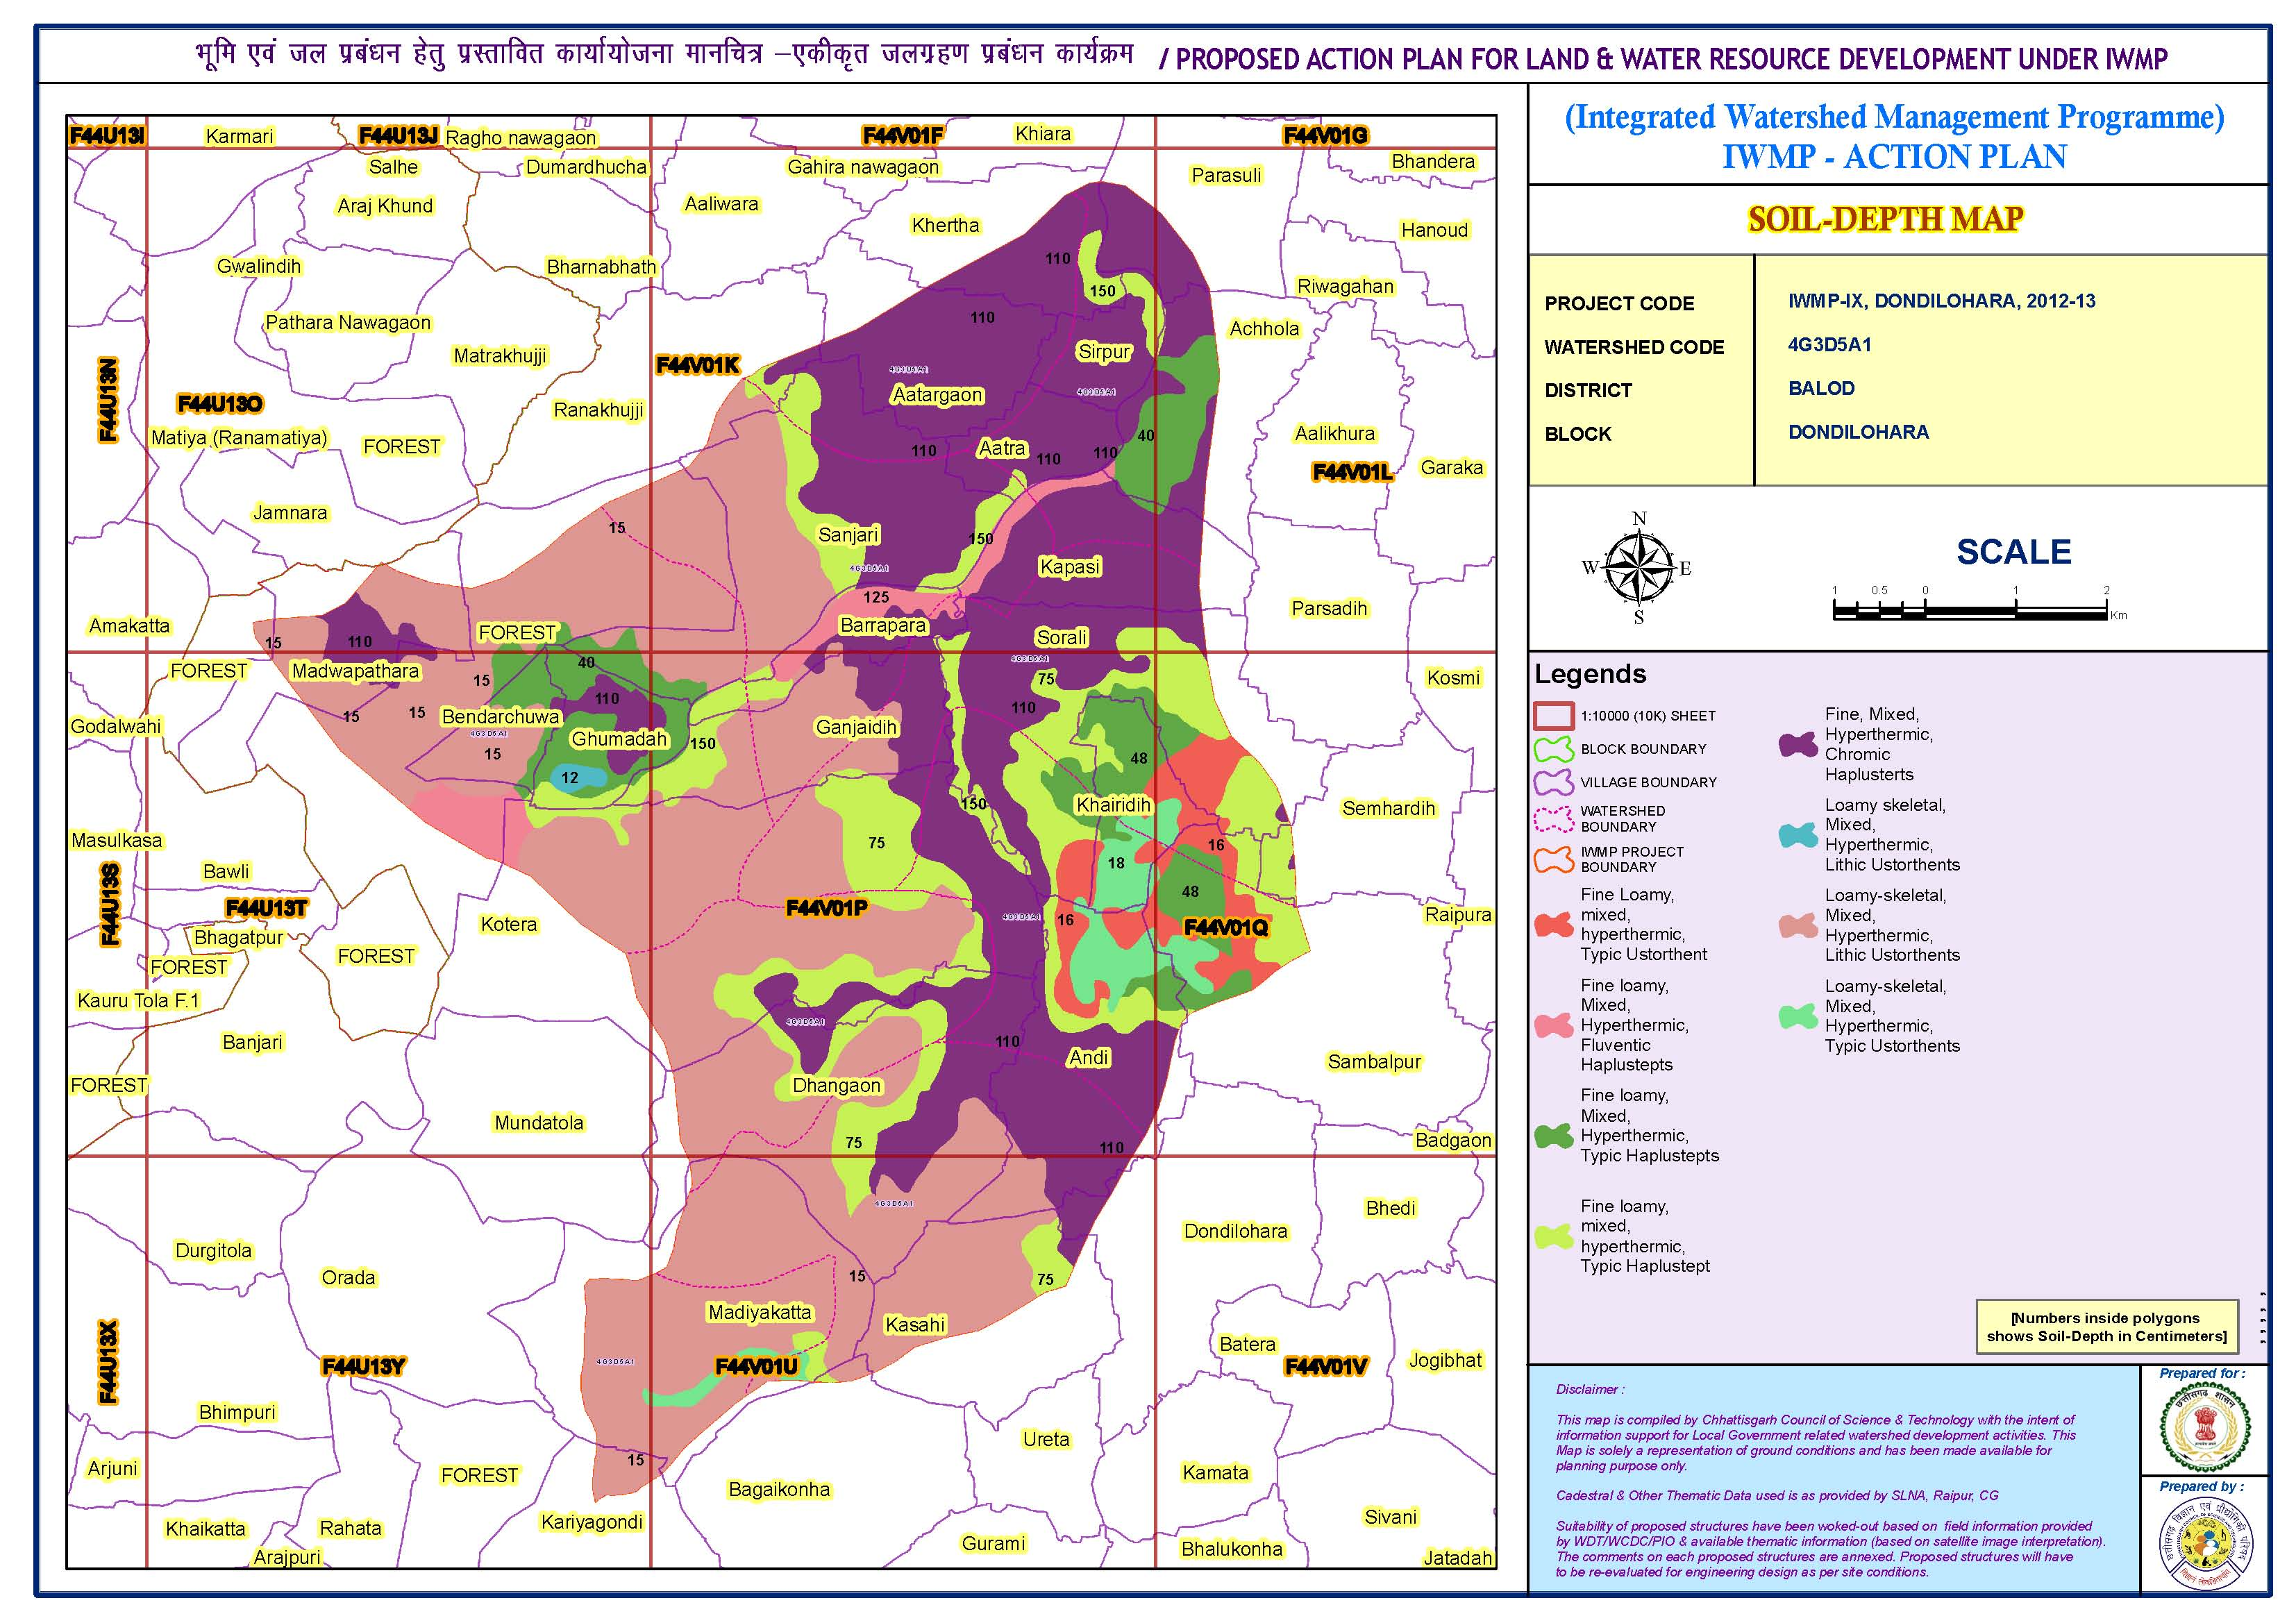 Integrated watershed management  (Soil-depth map)